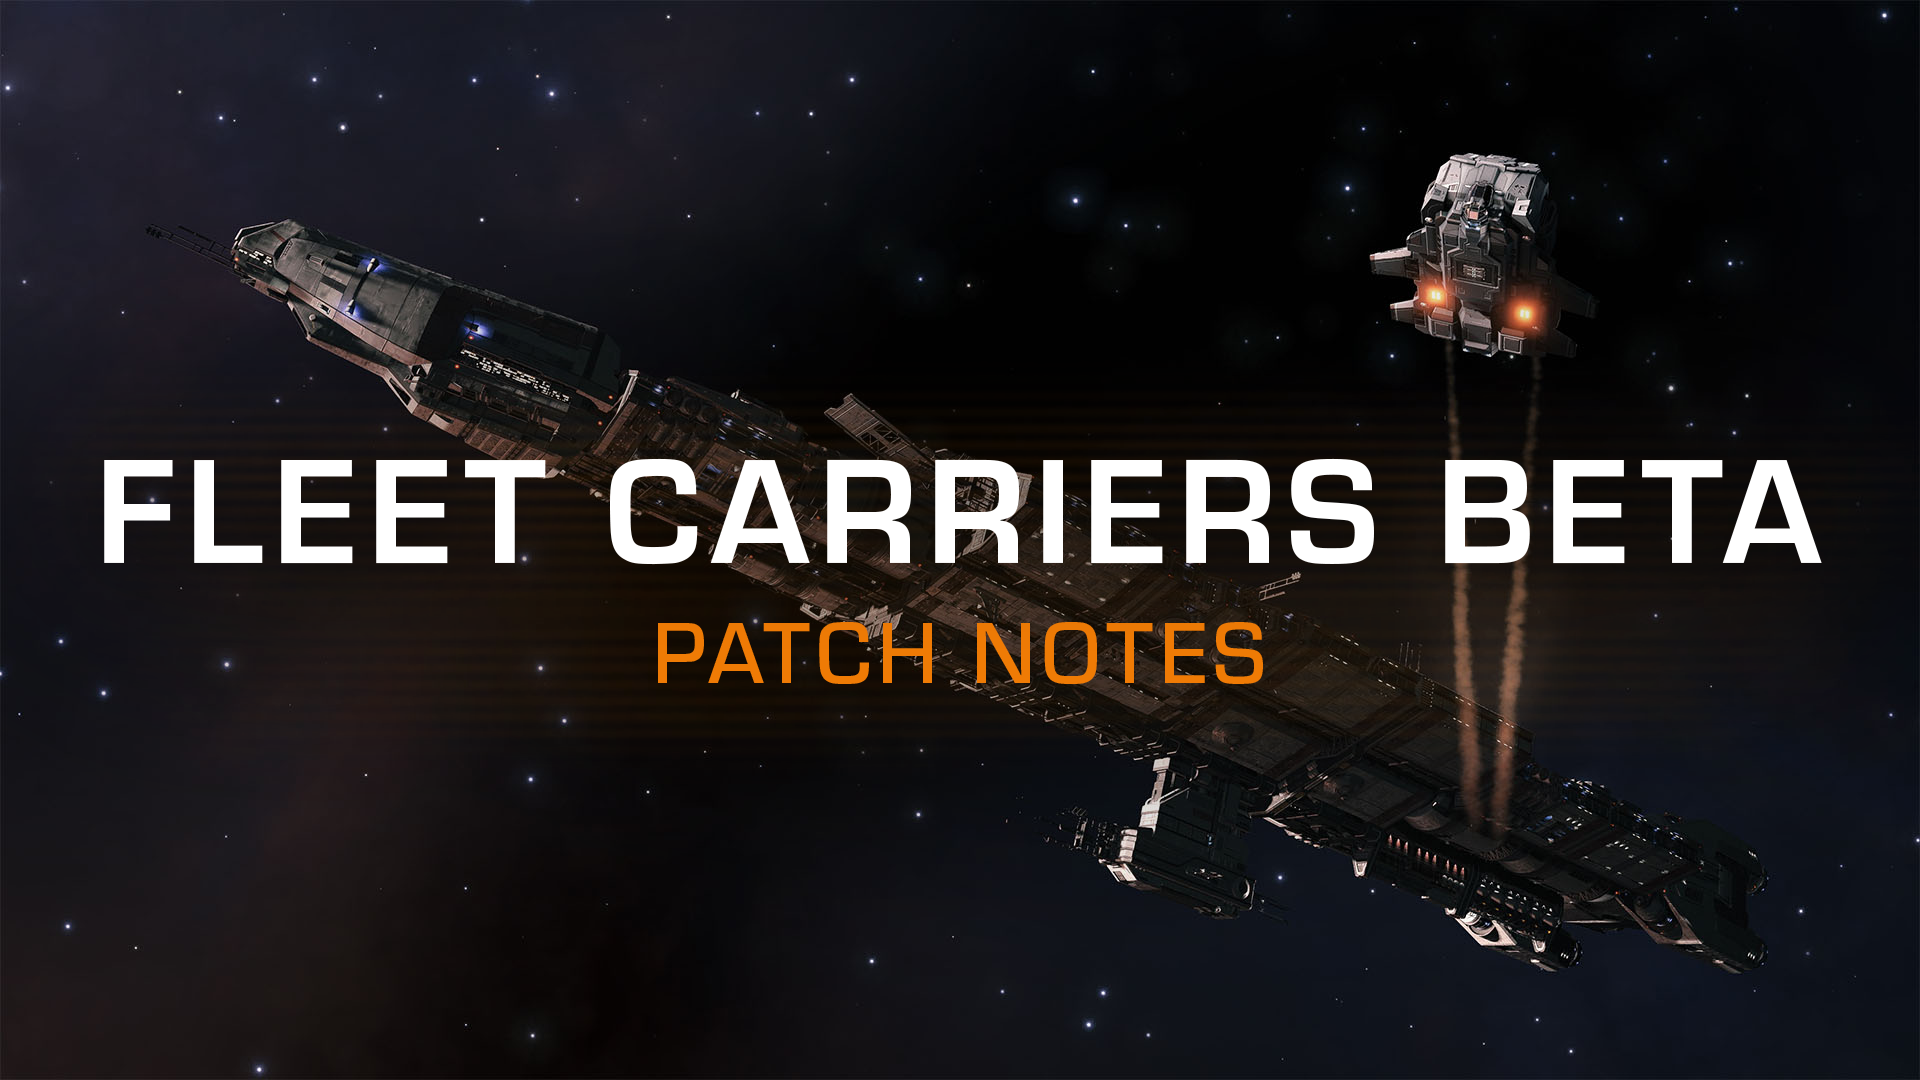 fleet_carrier_beta_2_patchnotes1920-x-1080.png